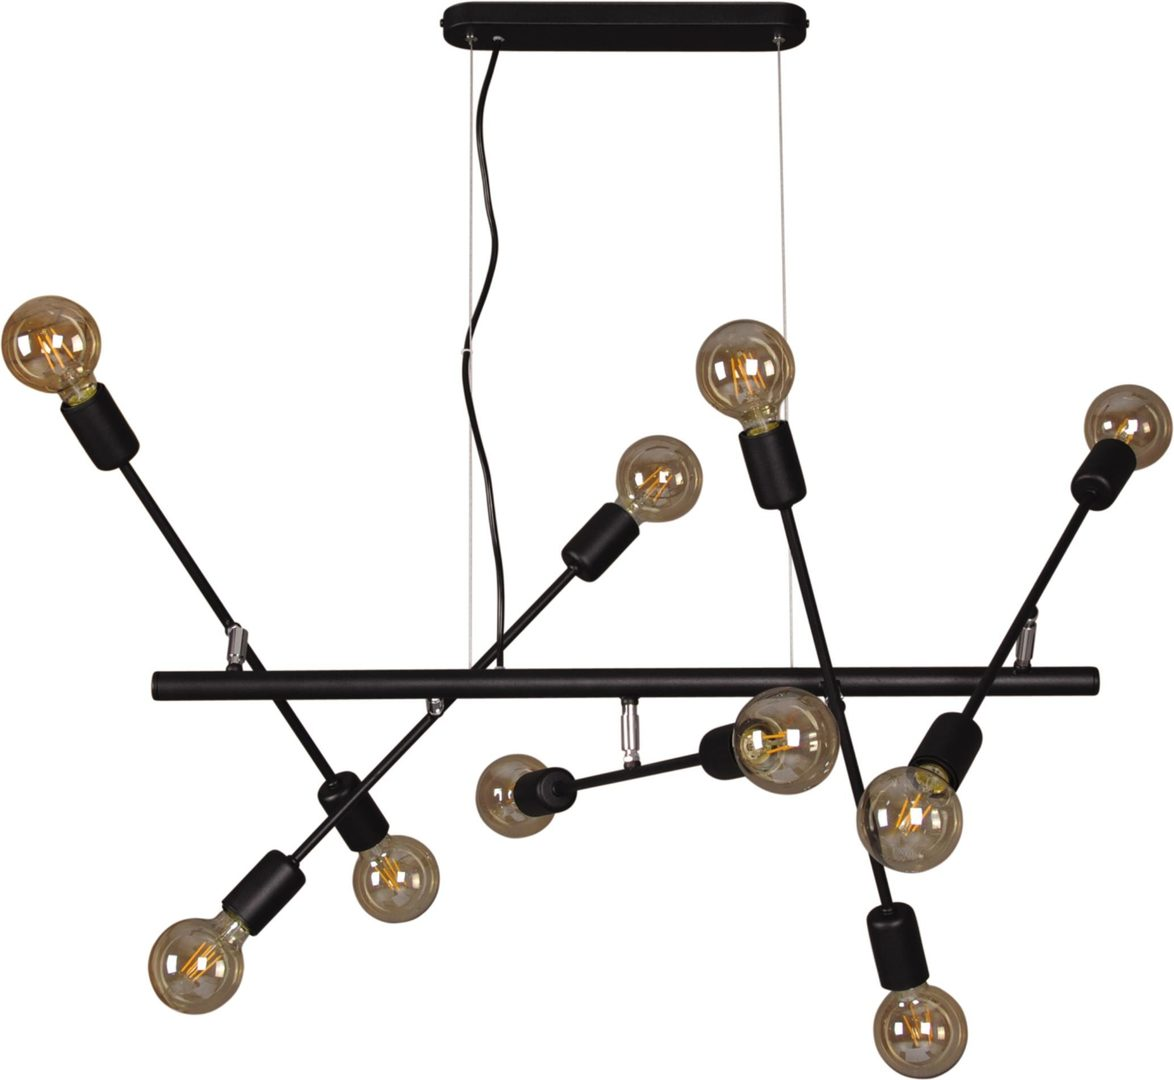 Hanging lamp K-4753 from the CAMARA series